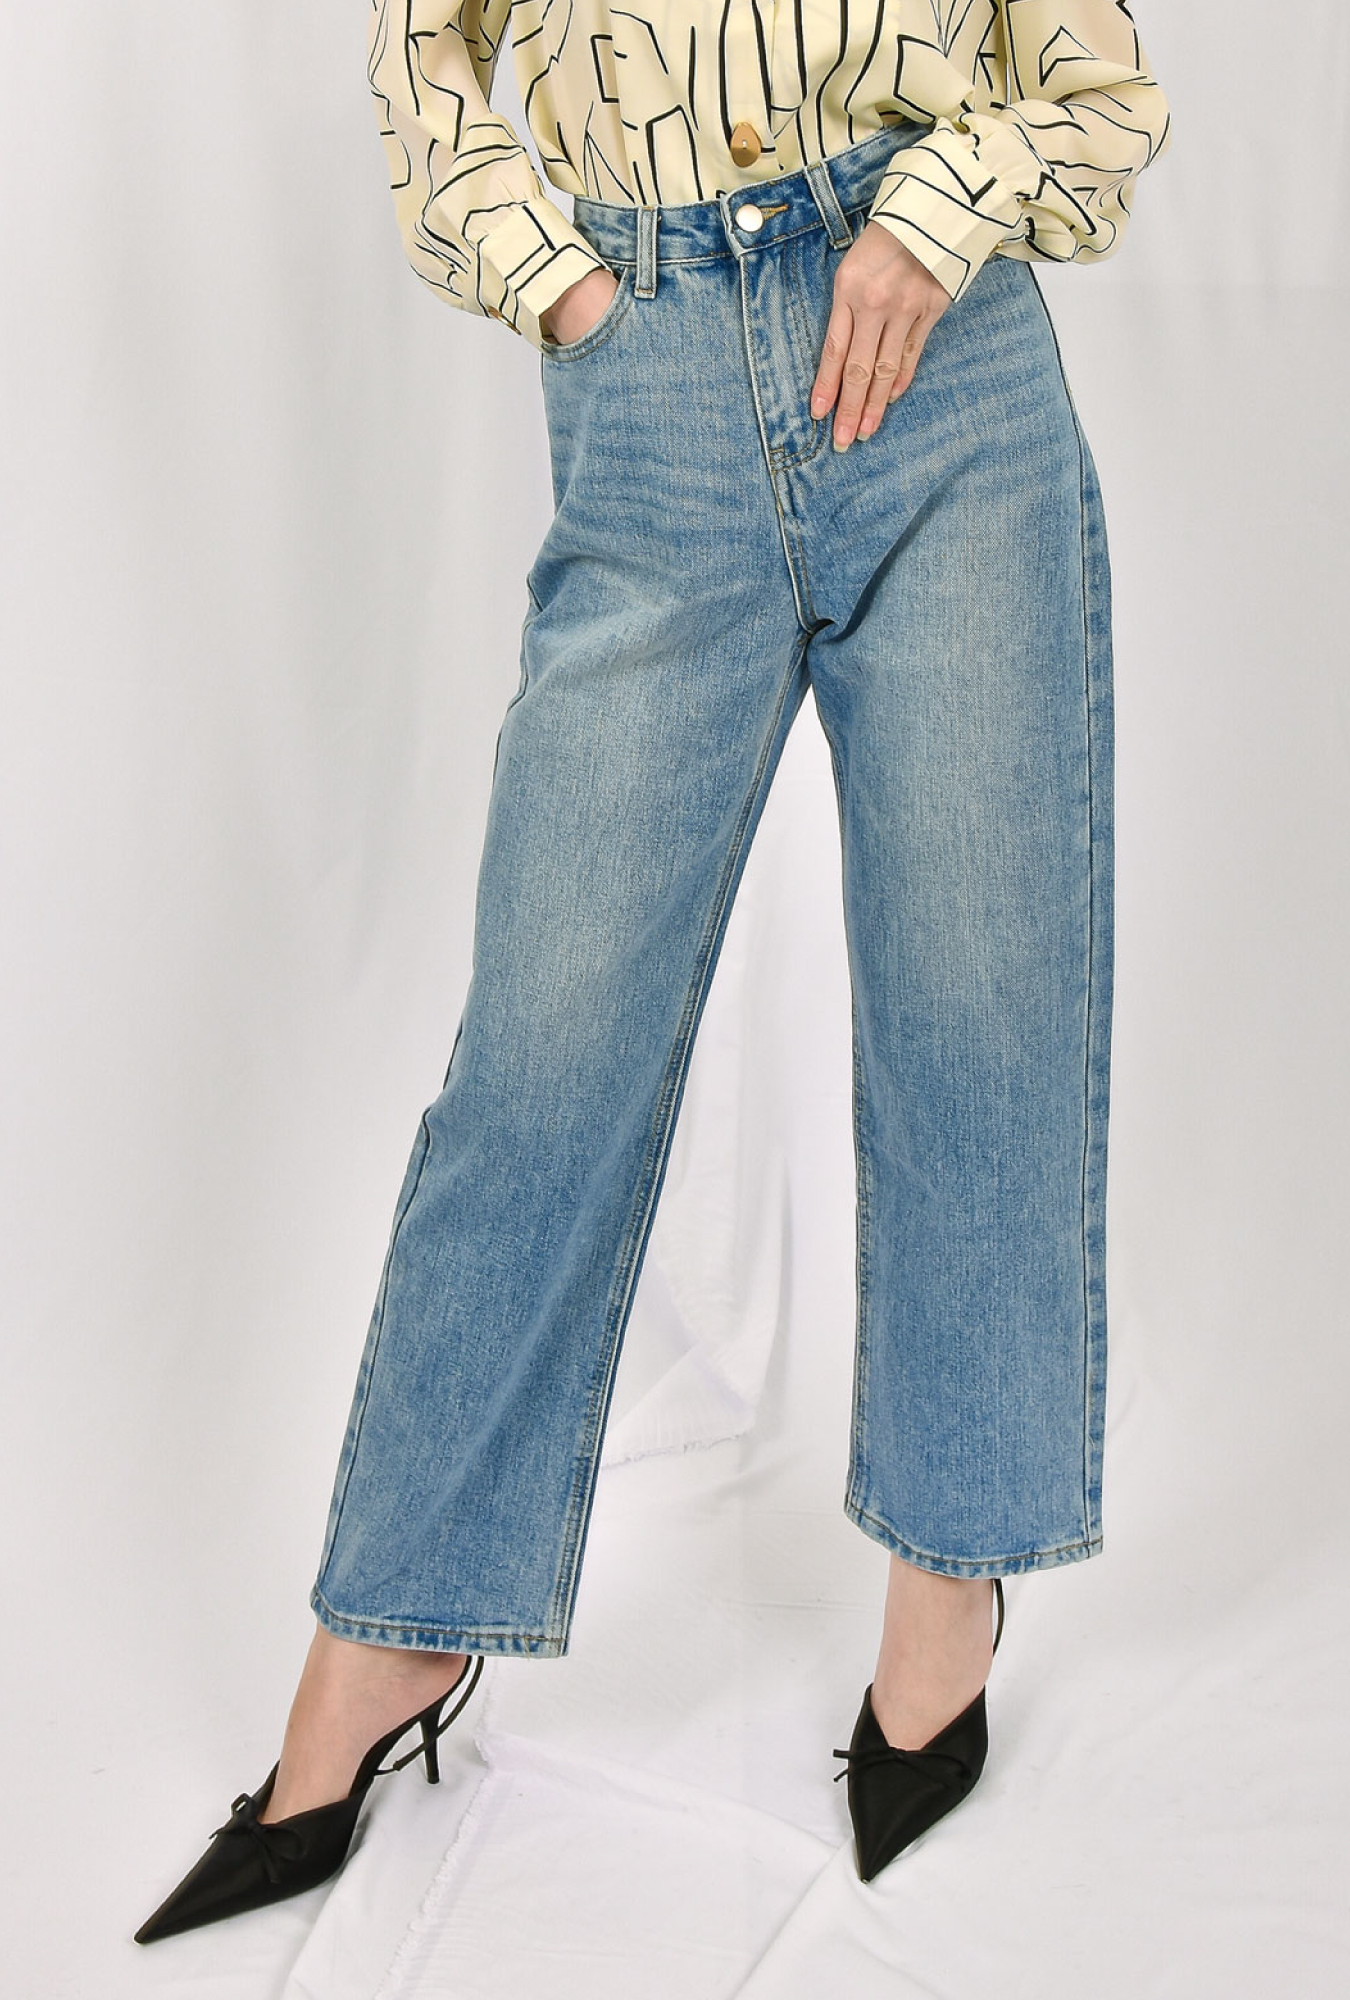 Straight Cut Jeans